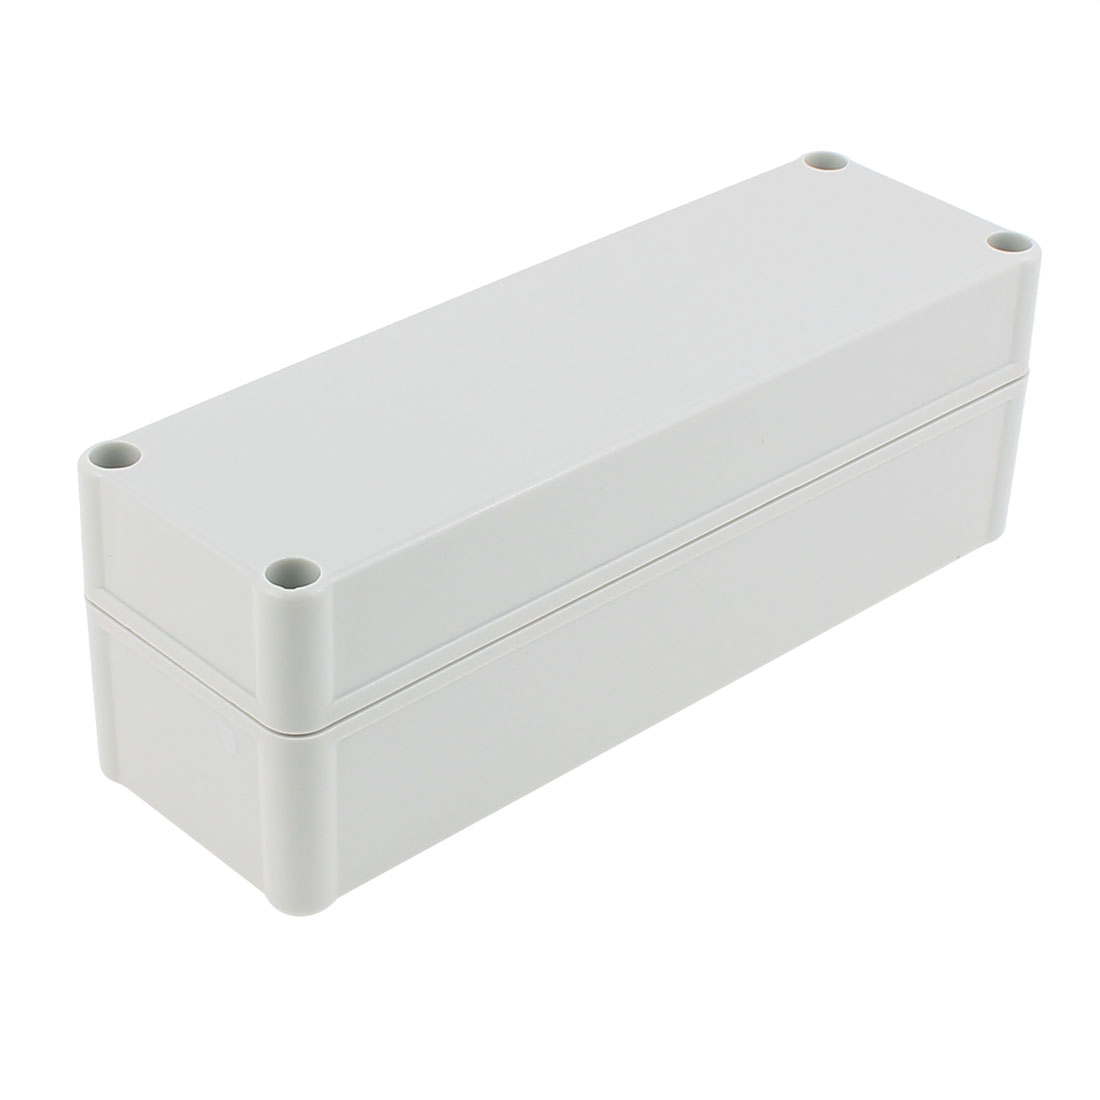 250 x 85 x 80mm Dustproof IP65 Junction Box Terminal Connecting Box Enclosure